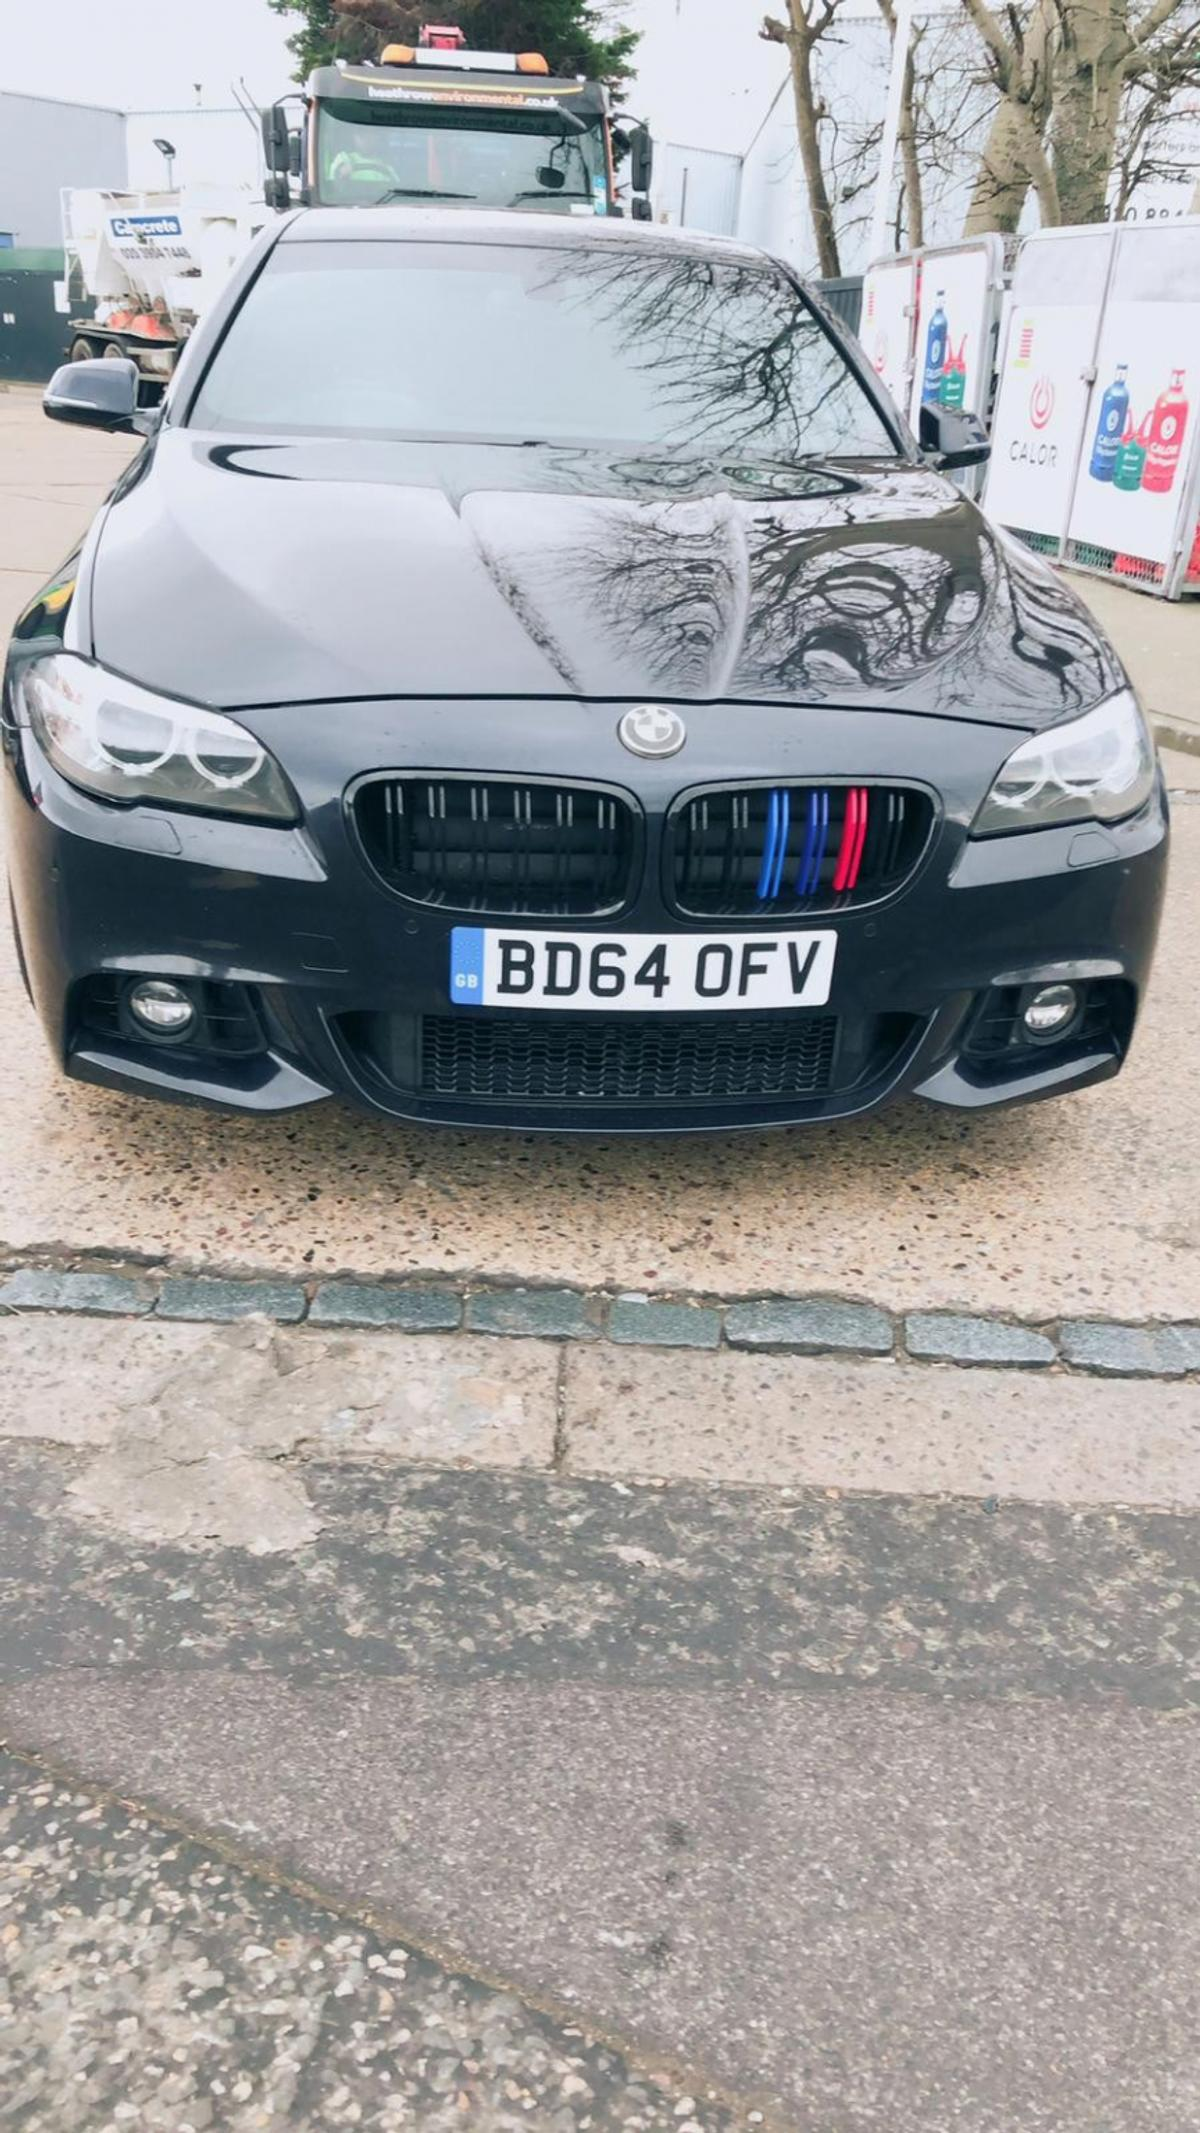 BMW 5 SERIES 525D ULEZ EXEMPT EURO 6 ONLY 59000 MILES FULLY LOADED BLACK LEATHER SEATS TINTED WINDOWS BLUETOOTH AUX BMW DOOR LOGO M SPORT 225 BHP 1 OWNER CALL 07534040900 FOR MORE INFORMATION